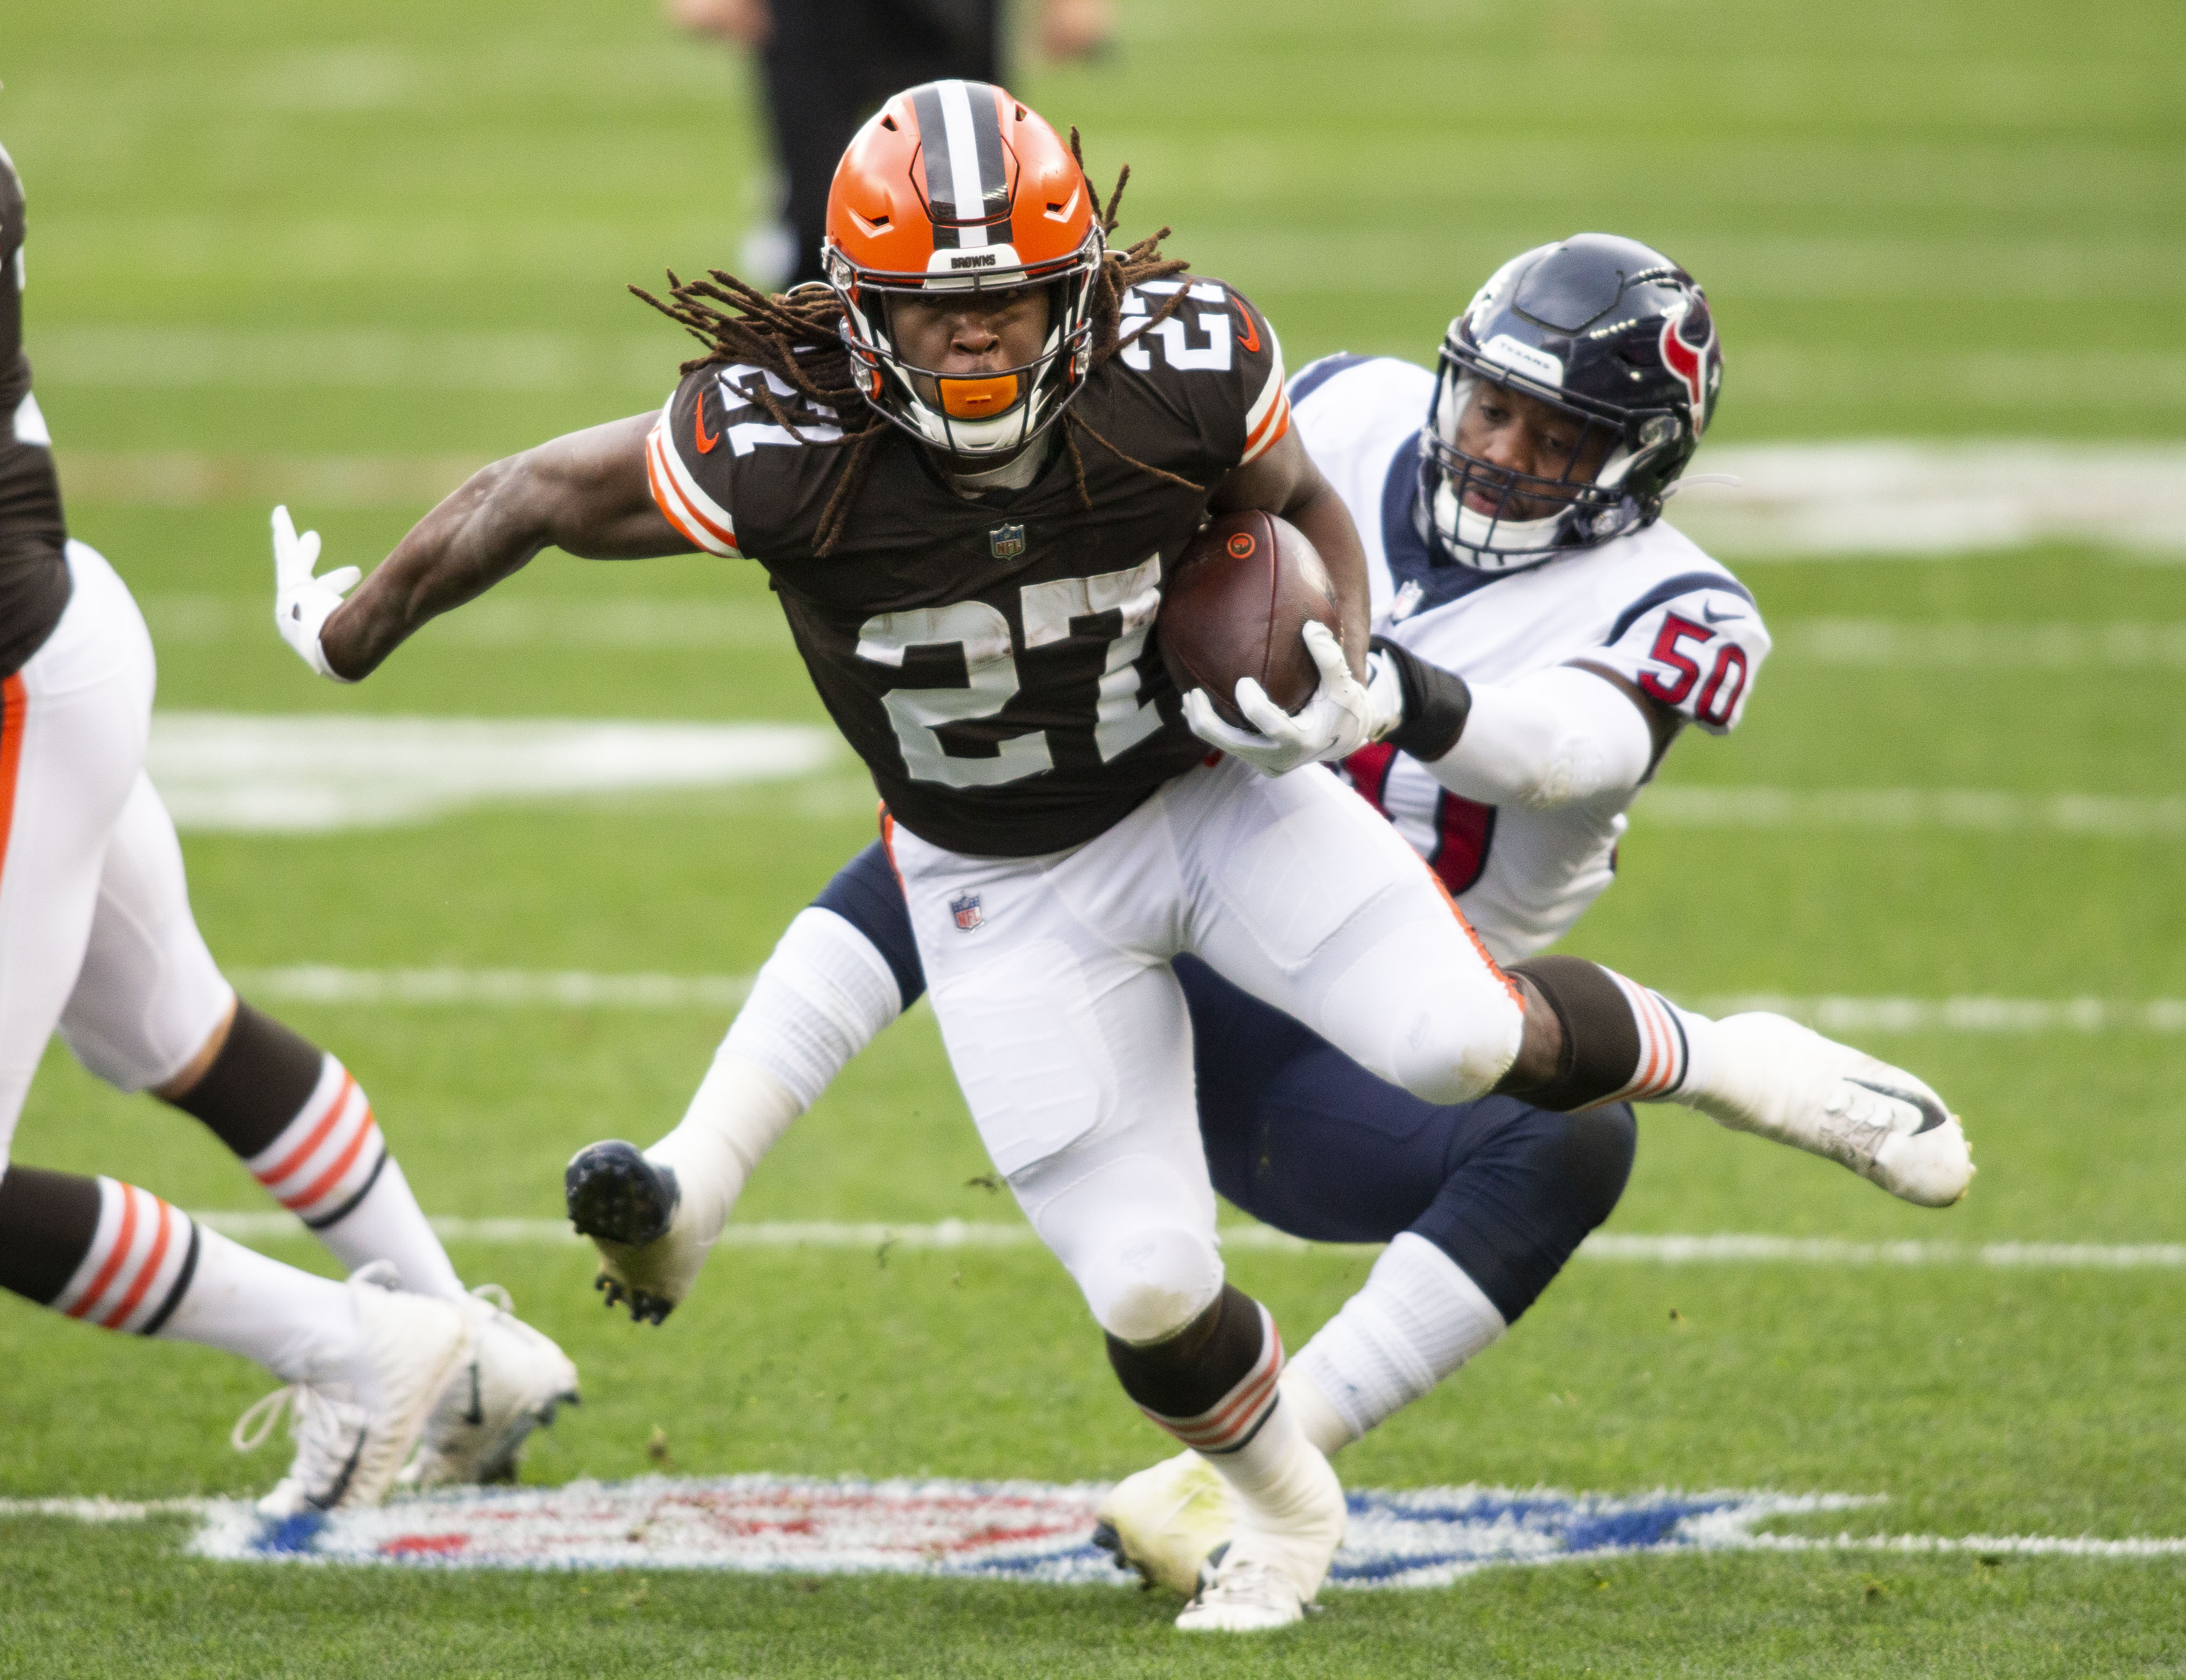 NFL: Houston Texans at Cleveland Browns